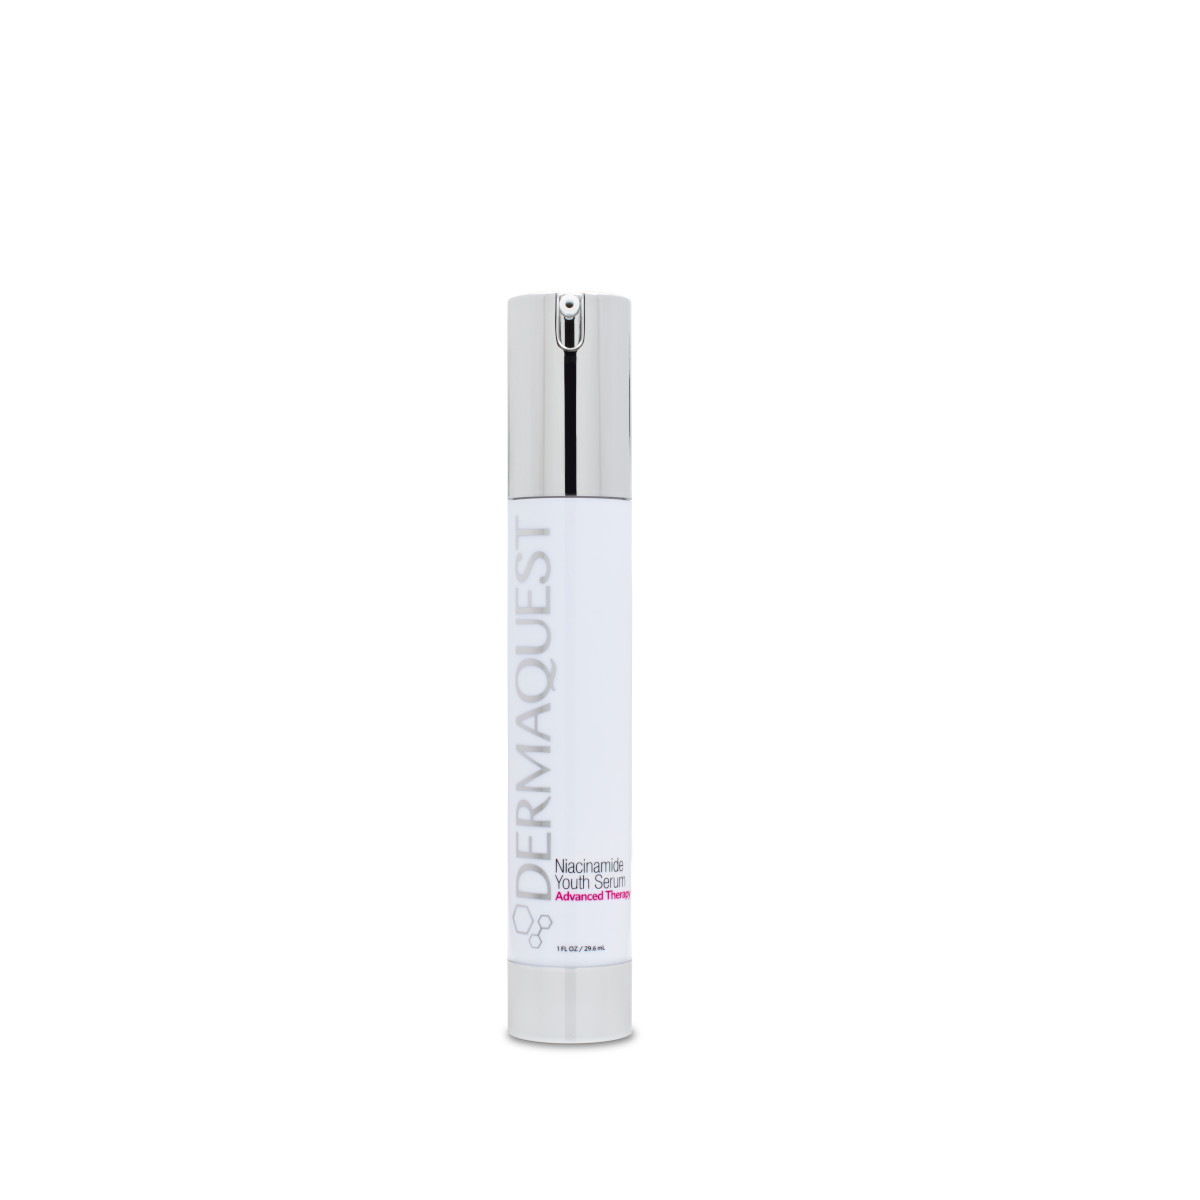 Advanced Therapy Niacinamide Youth Serum 1oz